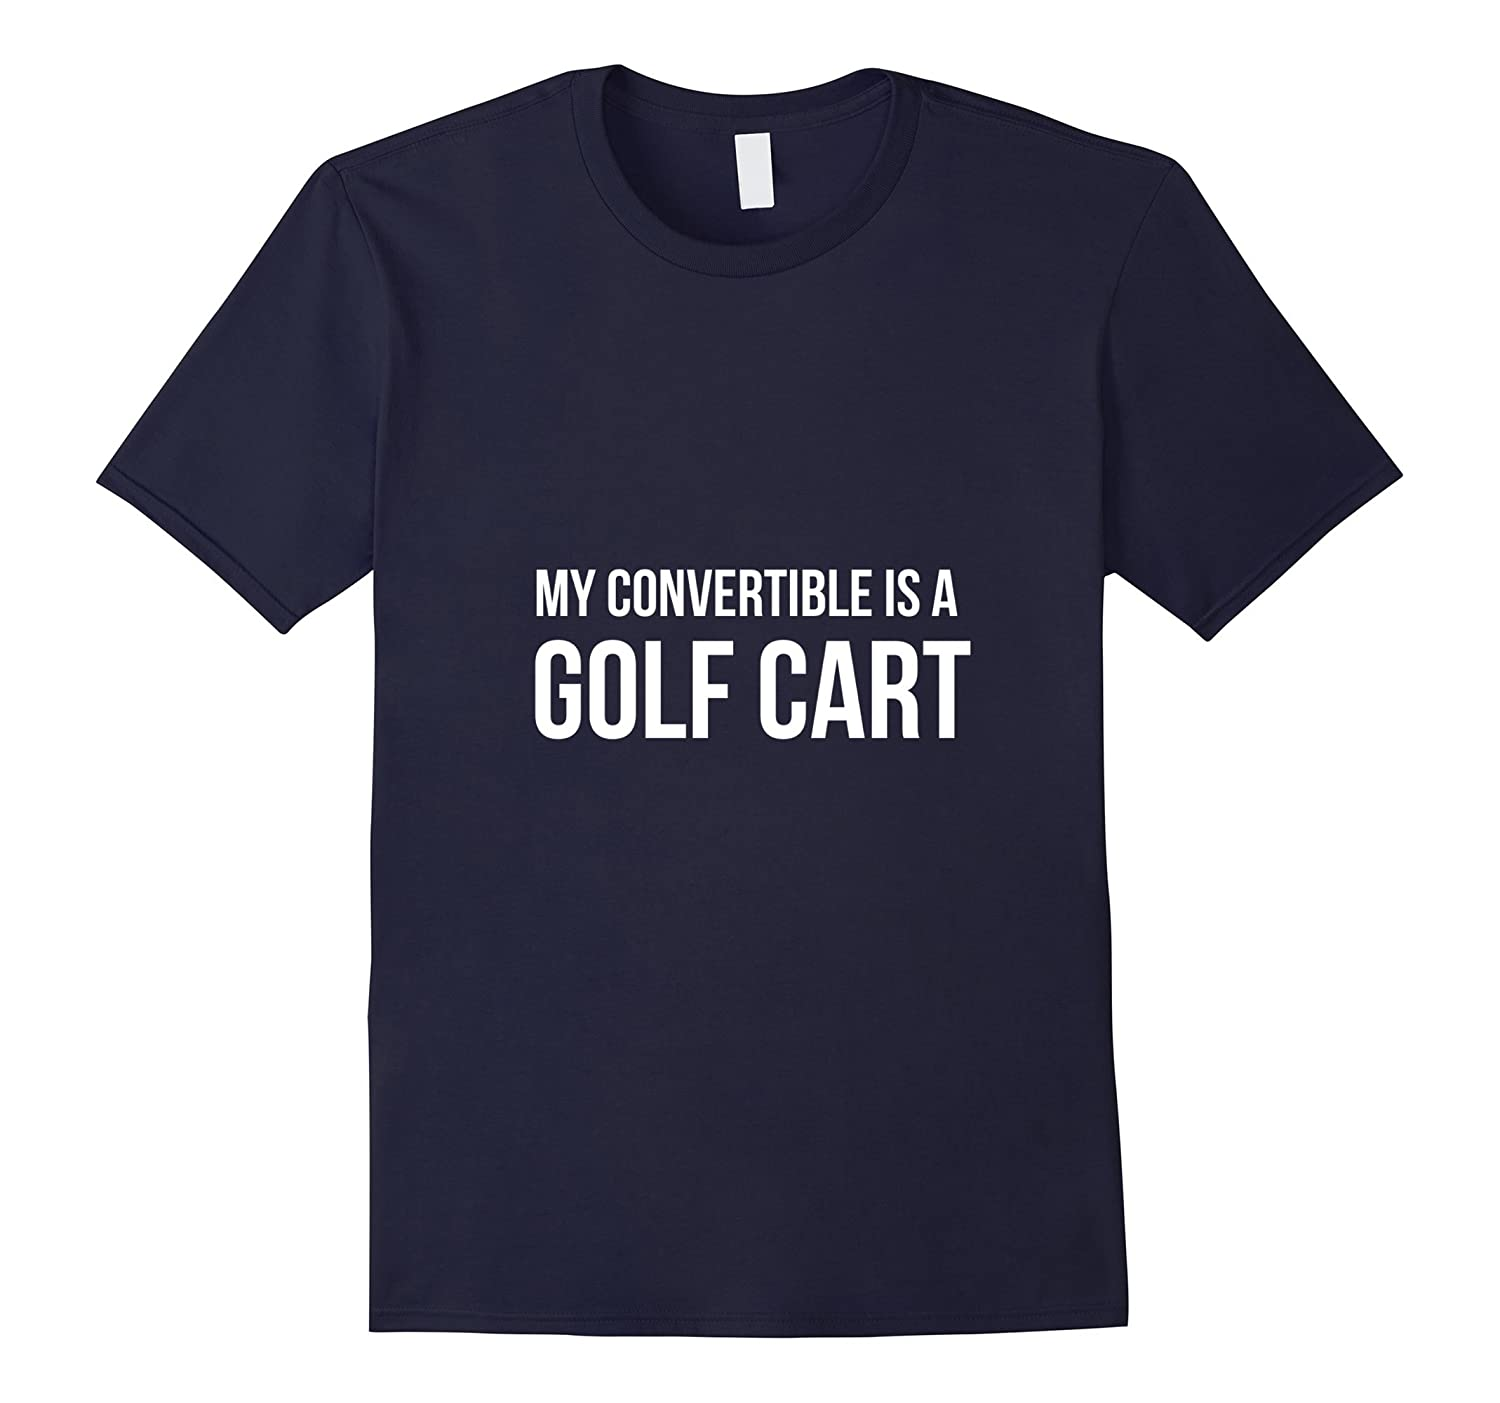 My Convertible is a Golf Cart - Funny Shirt For Golfer-TH